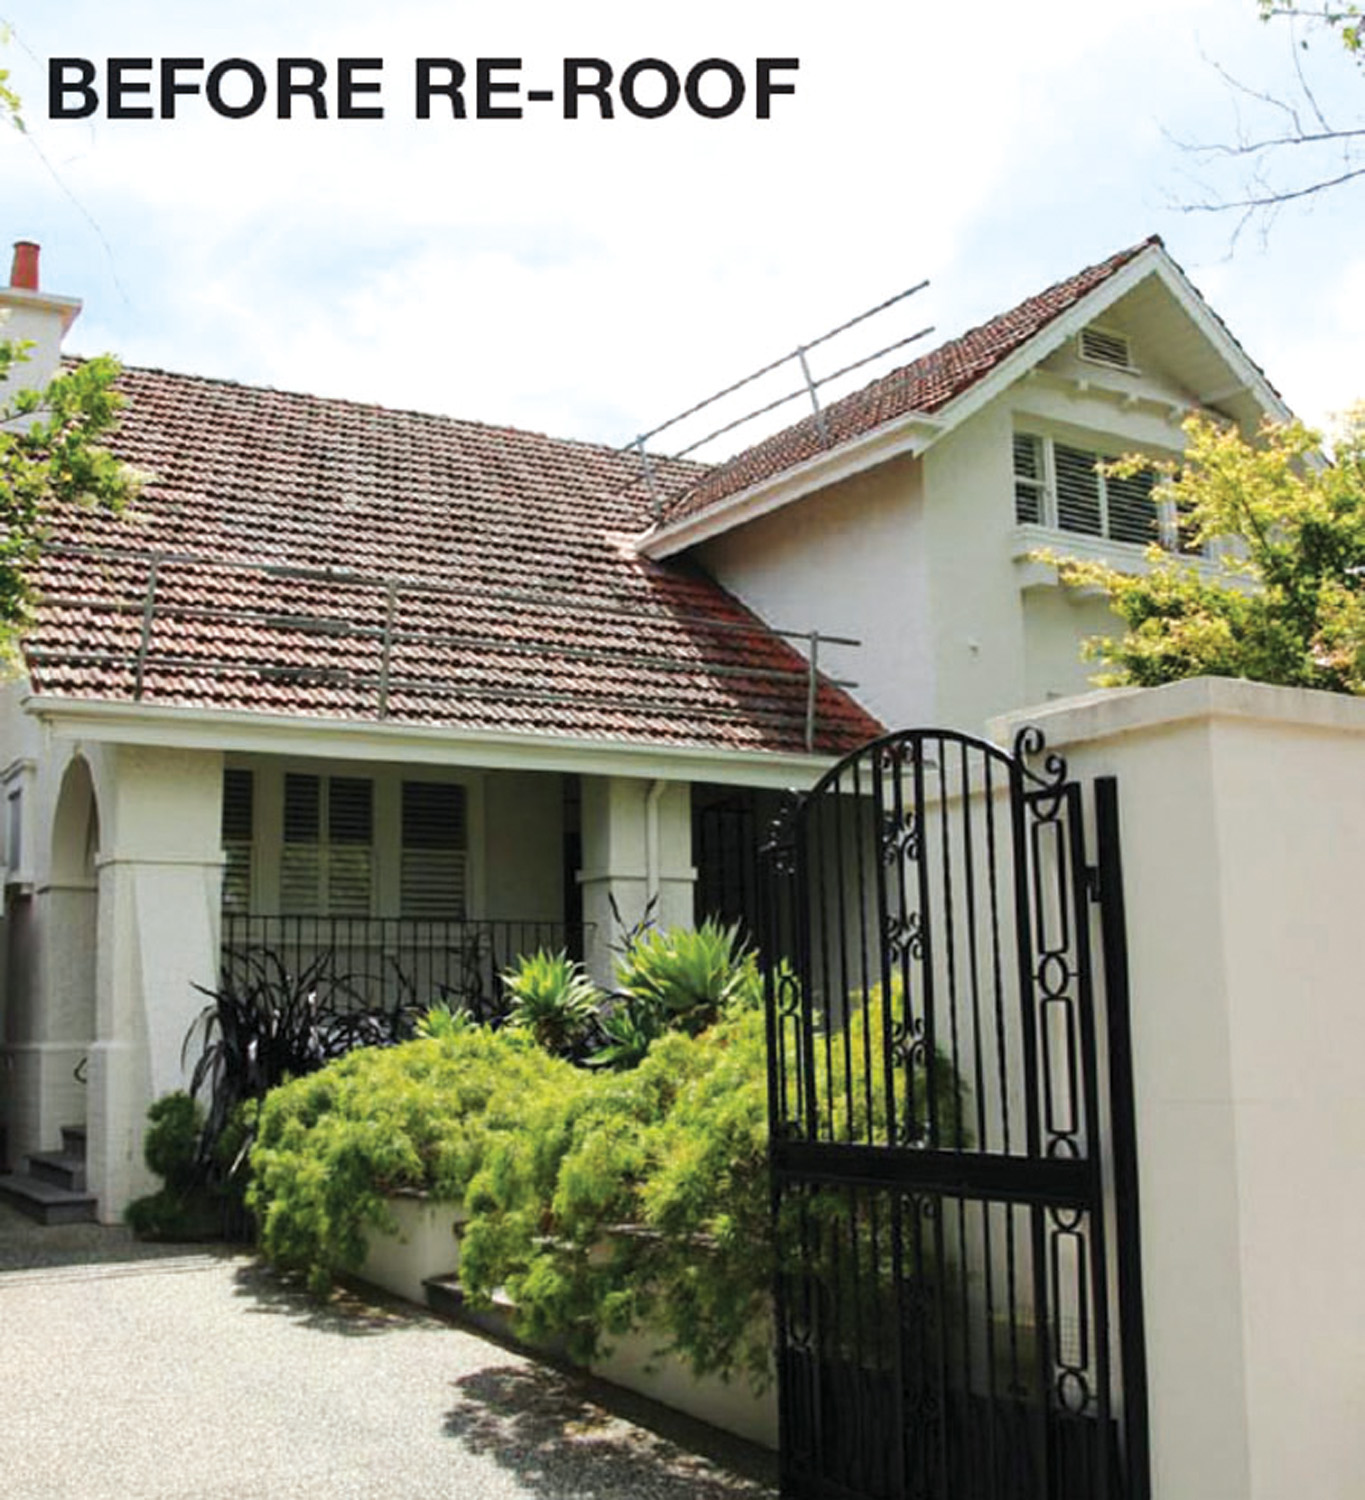 BeforeRe-Roof